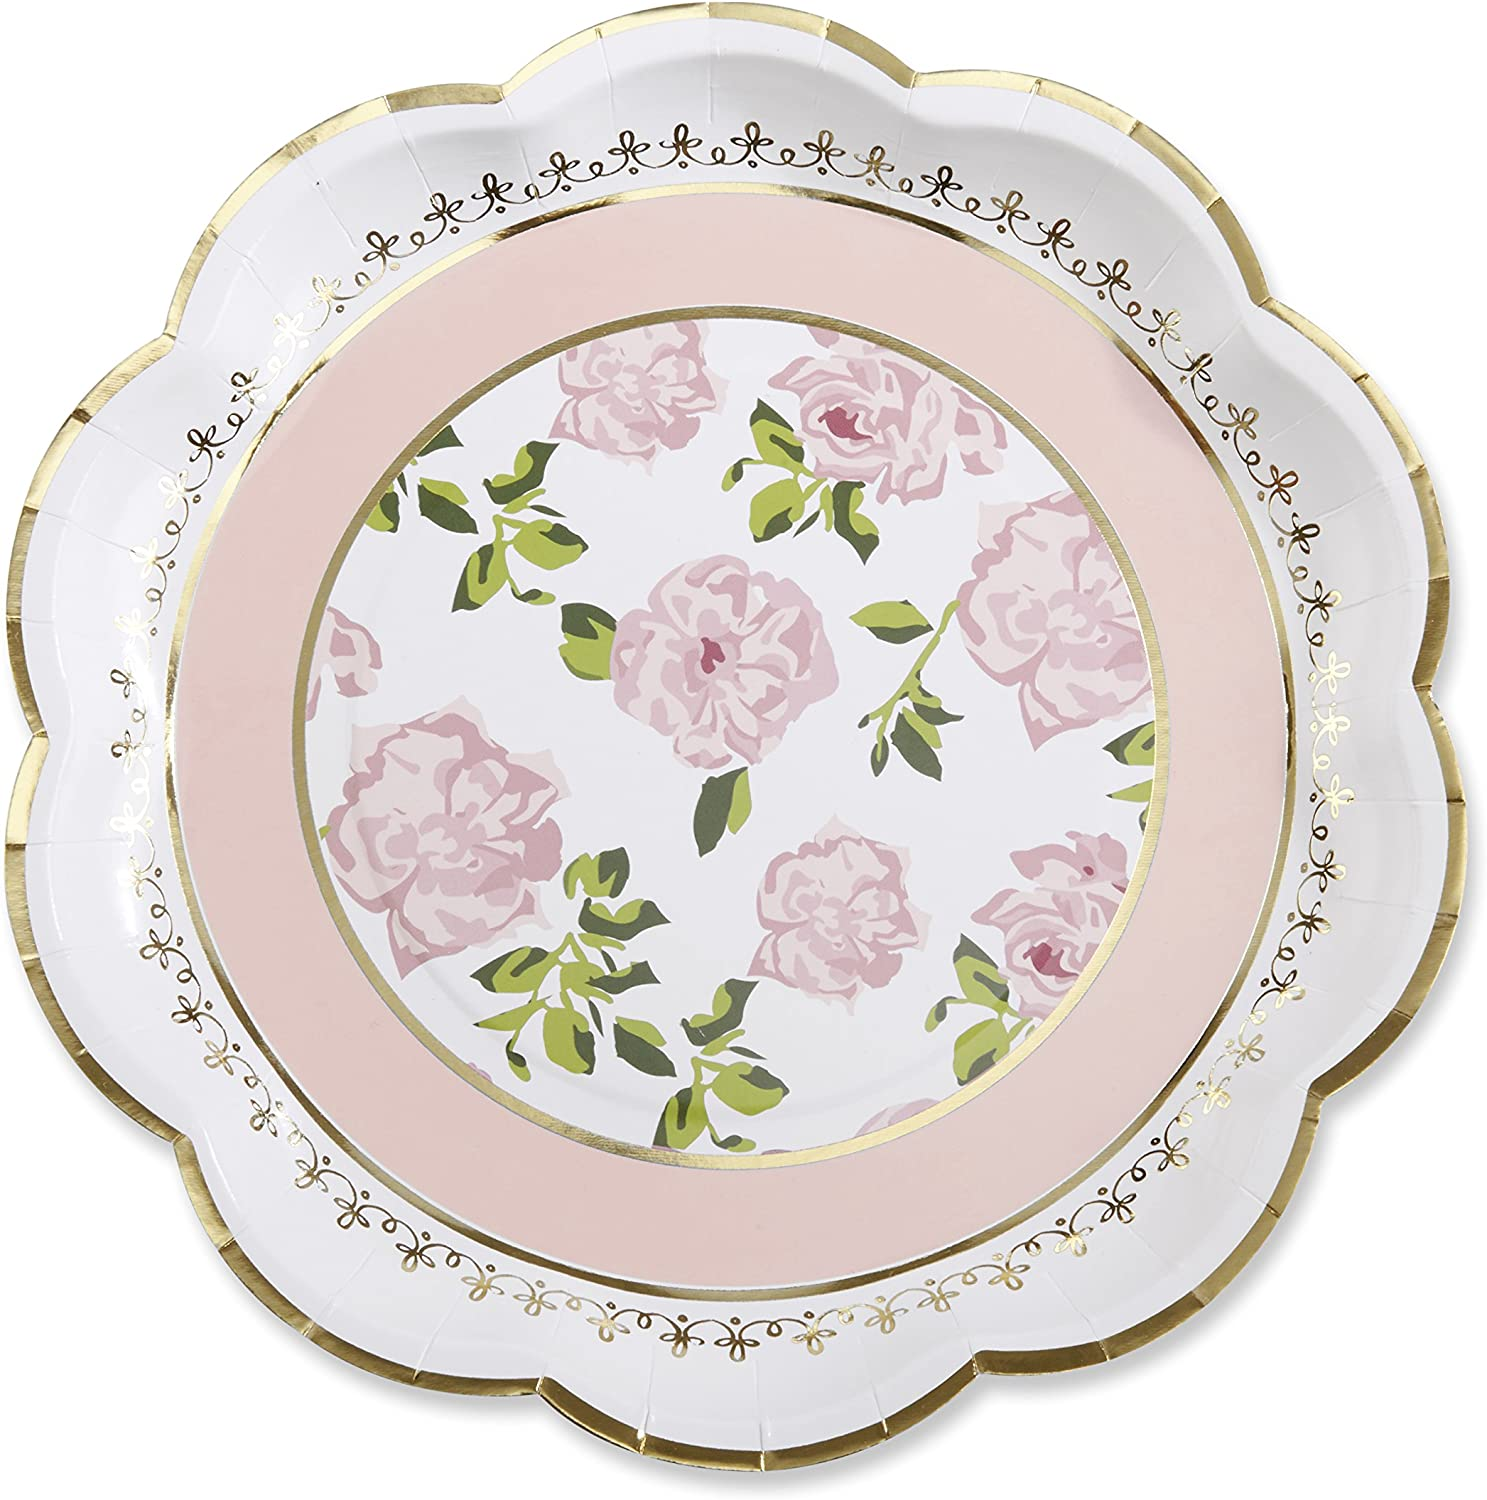 """48 PERSONALIZED desert 6.75/"""" dia heavy duty paper plates printed in 24 hours"""